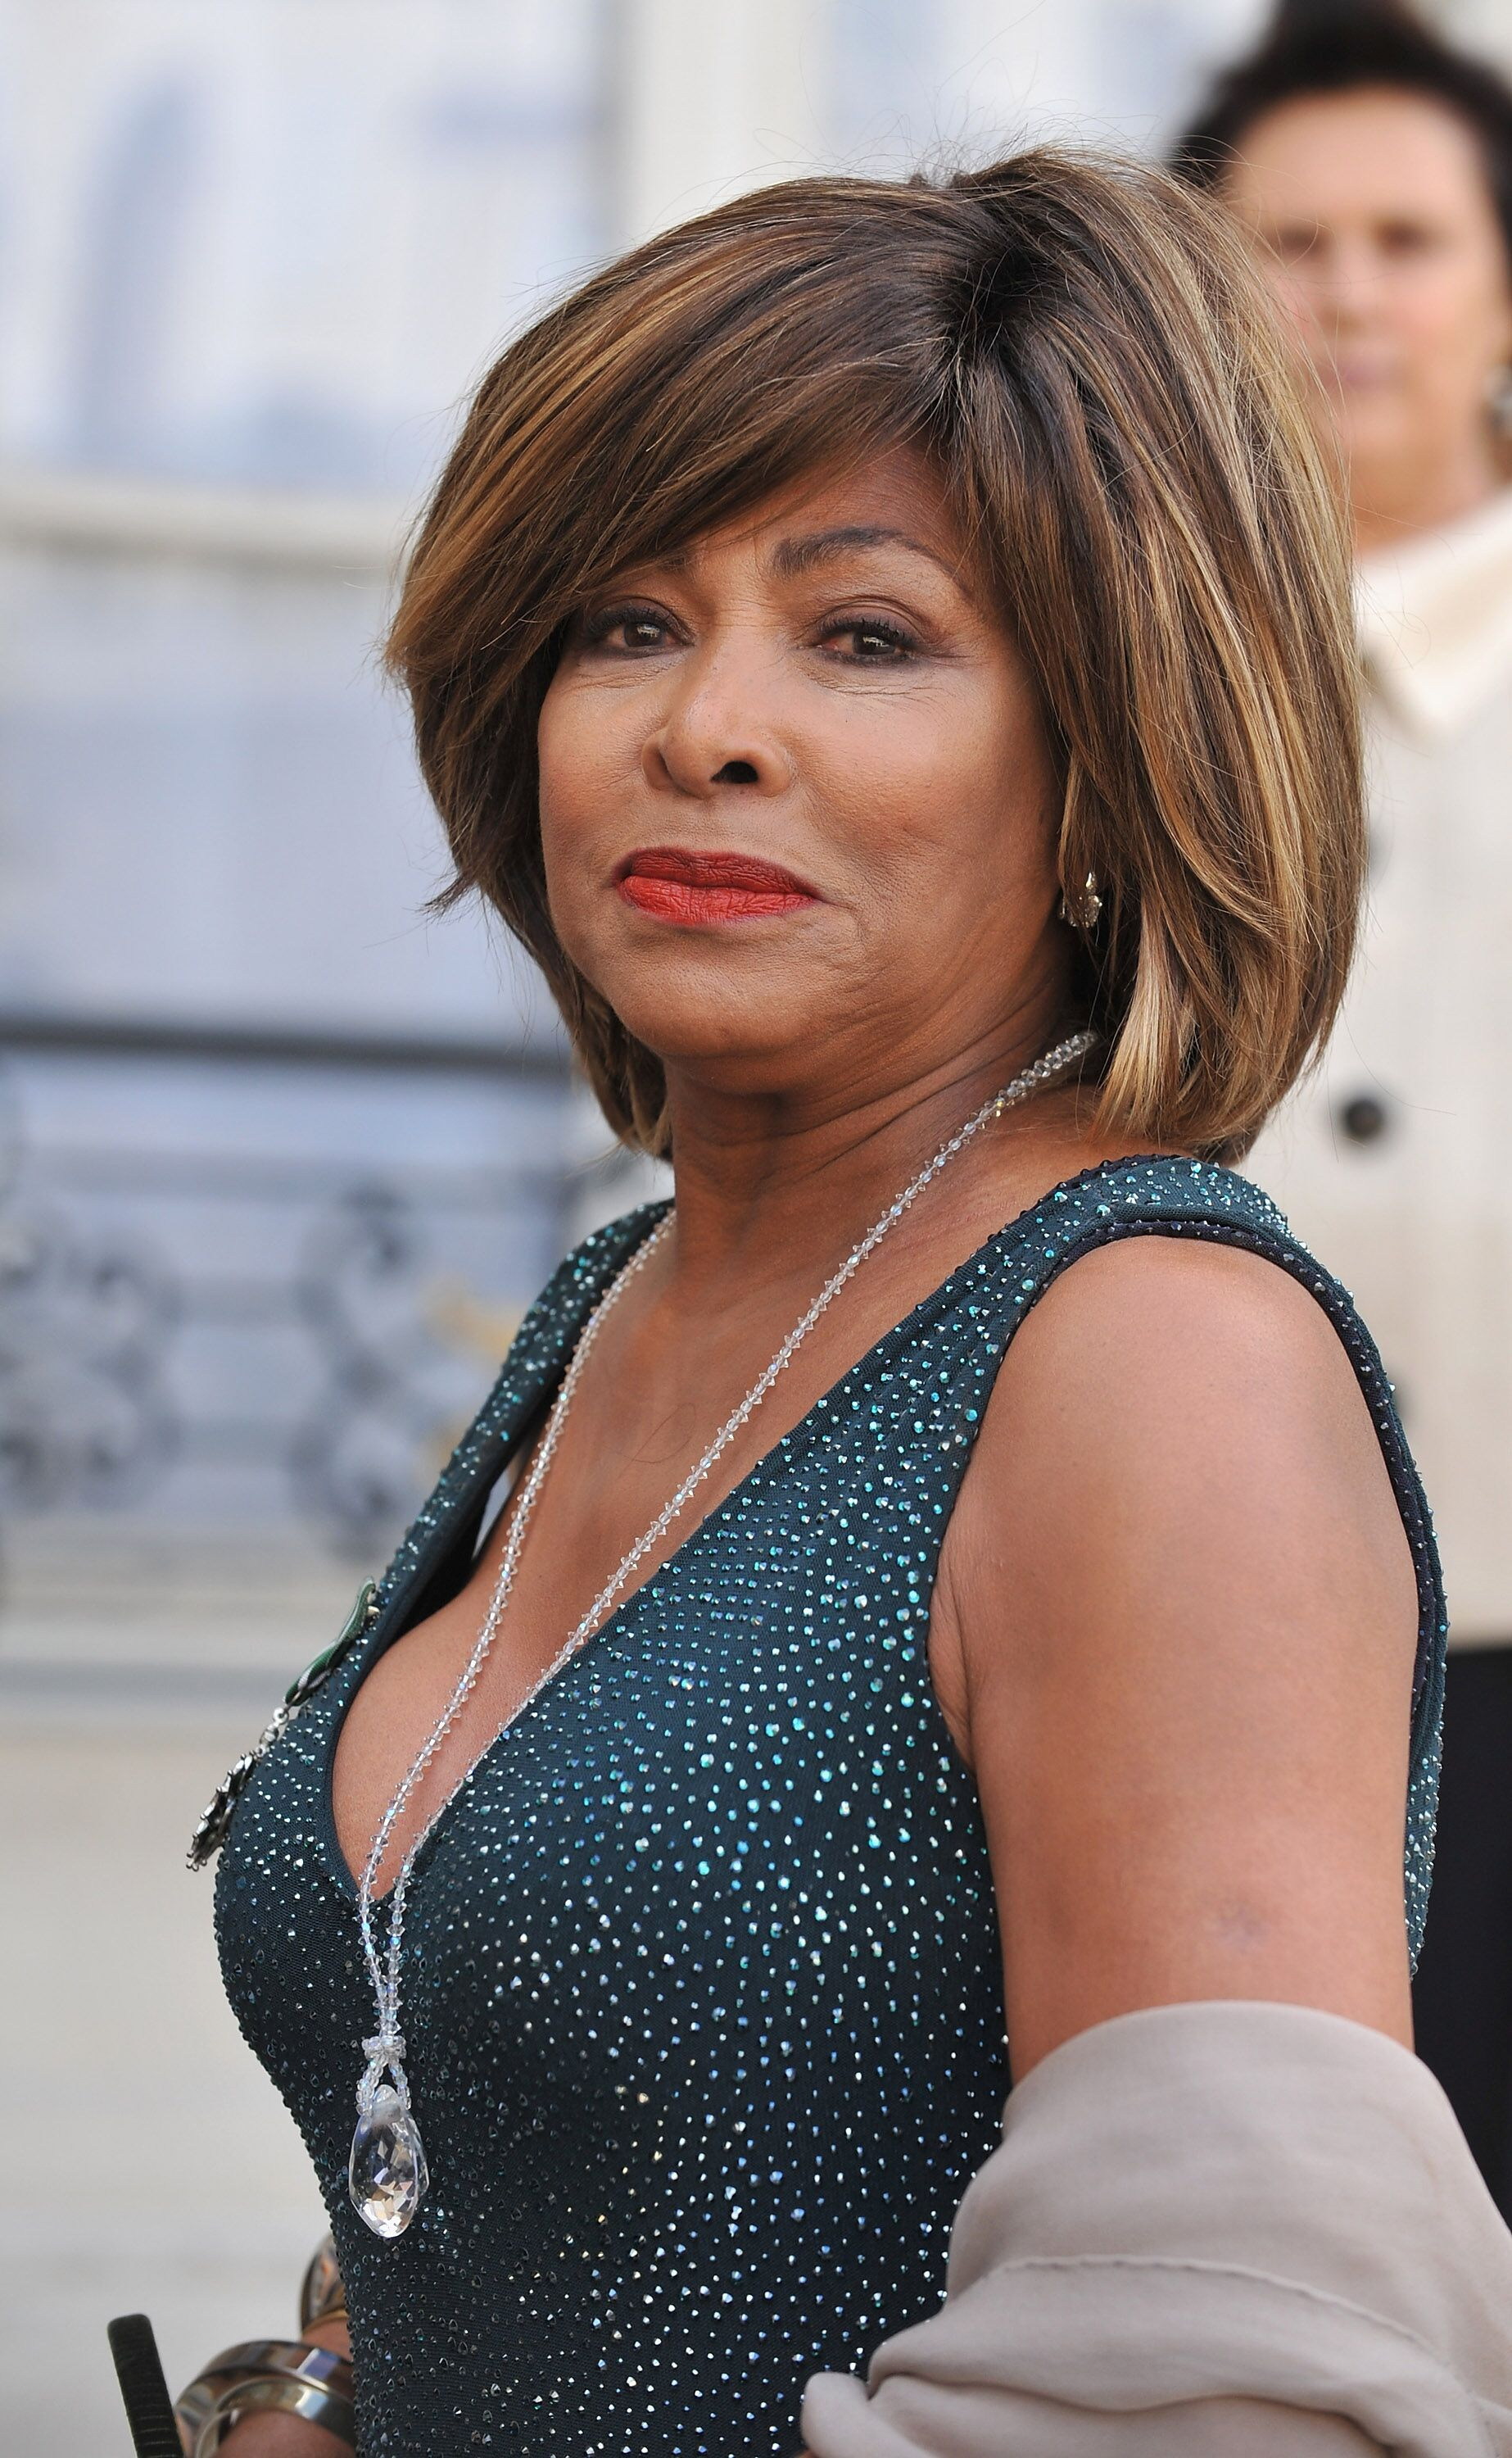 Tina Turner poses in the courtyard of the Elysee Palace before attending a ceremony at the president's official residence for honorees of France's most prestigious Legion D'Honneur award    Getty Images